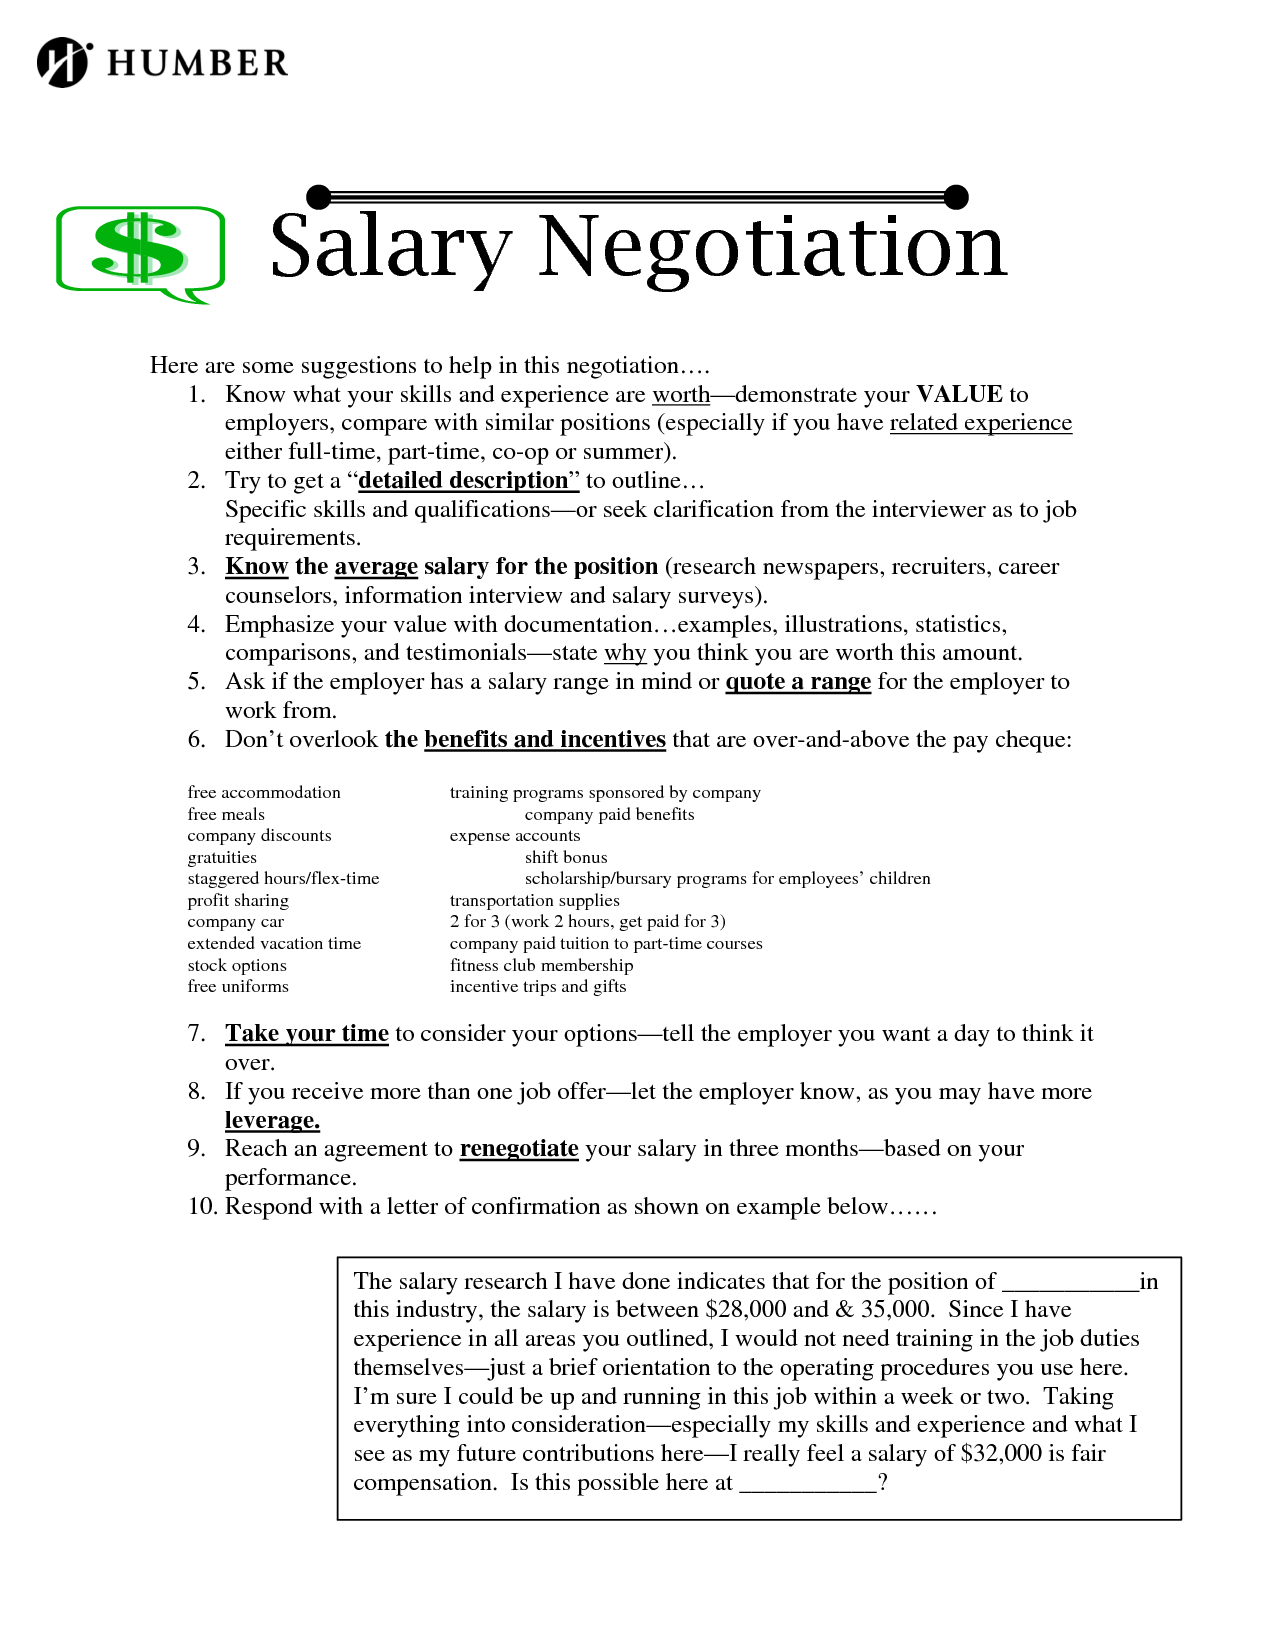 Appointment letter sample for general manager job format offer appointment letter sample for general manager job format offer counter thecheapjerseys Gallery